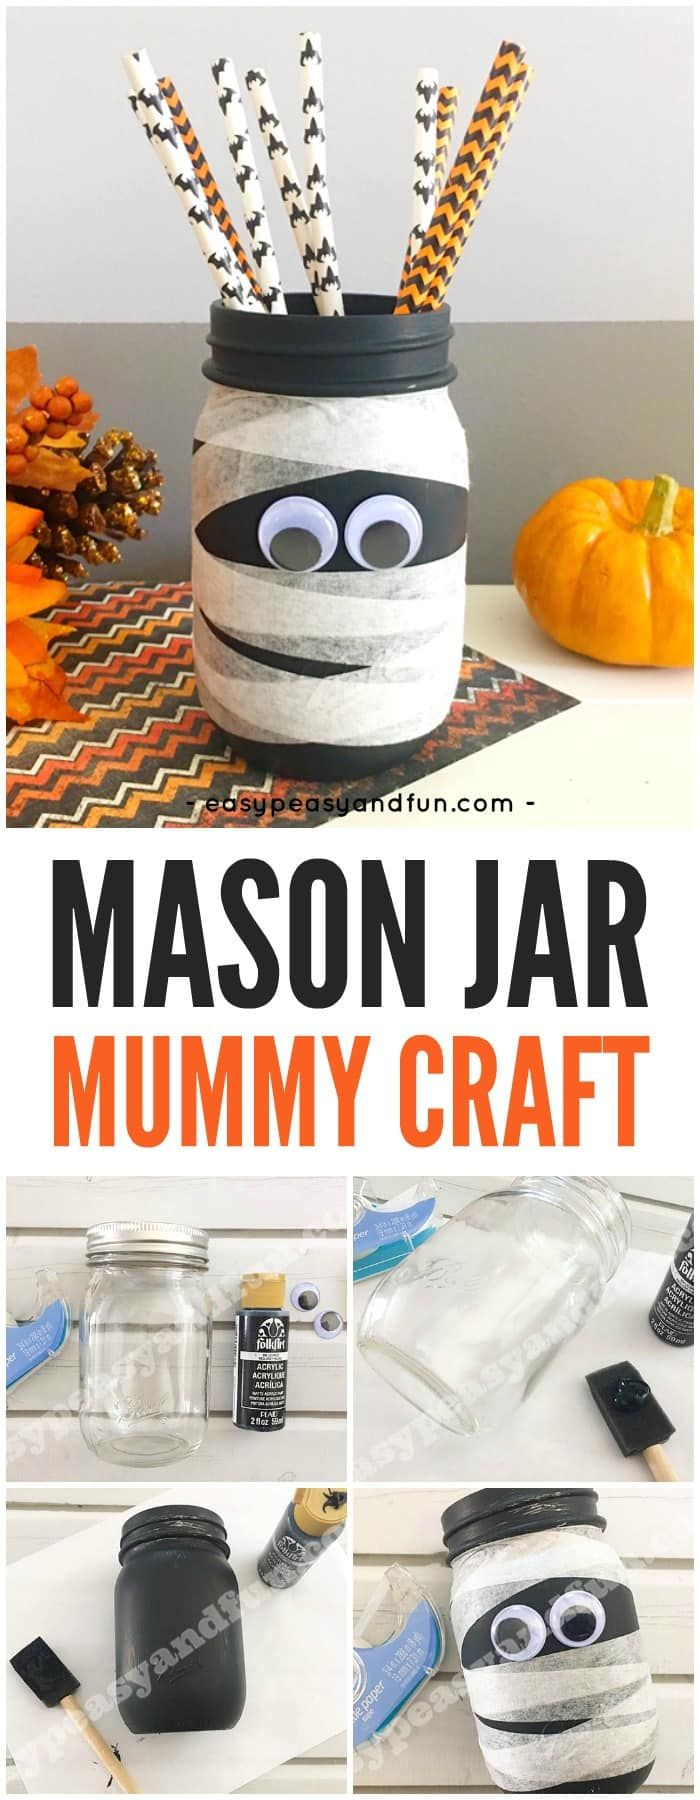 Super simple Halloween craft idea for kids to make - make a mason jar mummy! #Halloween #halloweencrafts #craftsforkids